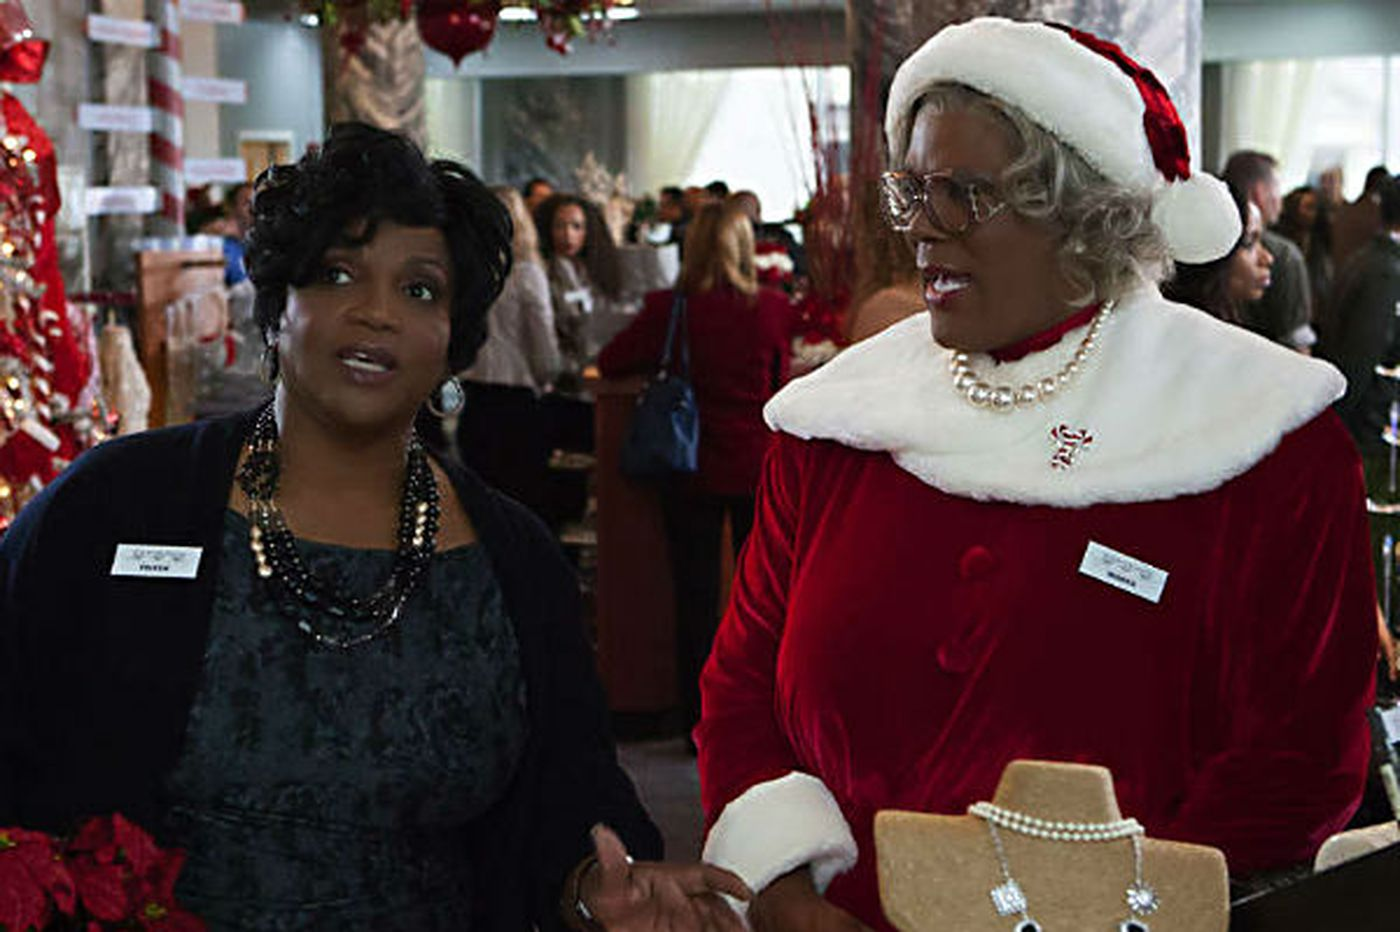 'A Madea Christmas' makes fun of, then embraces, its PG-13 values